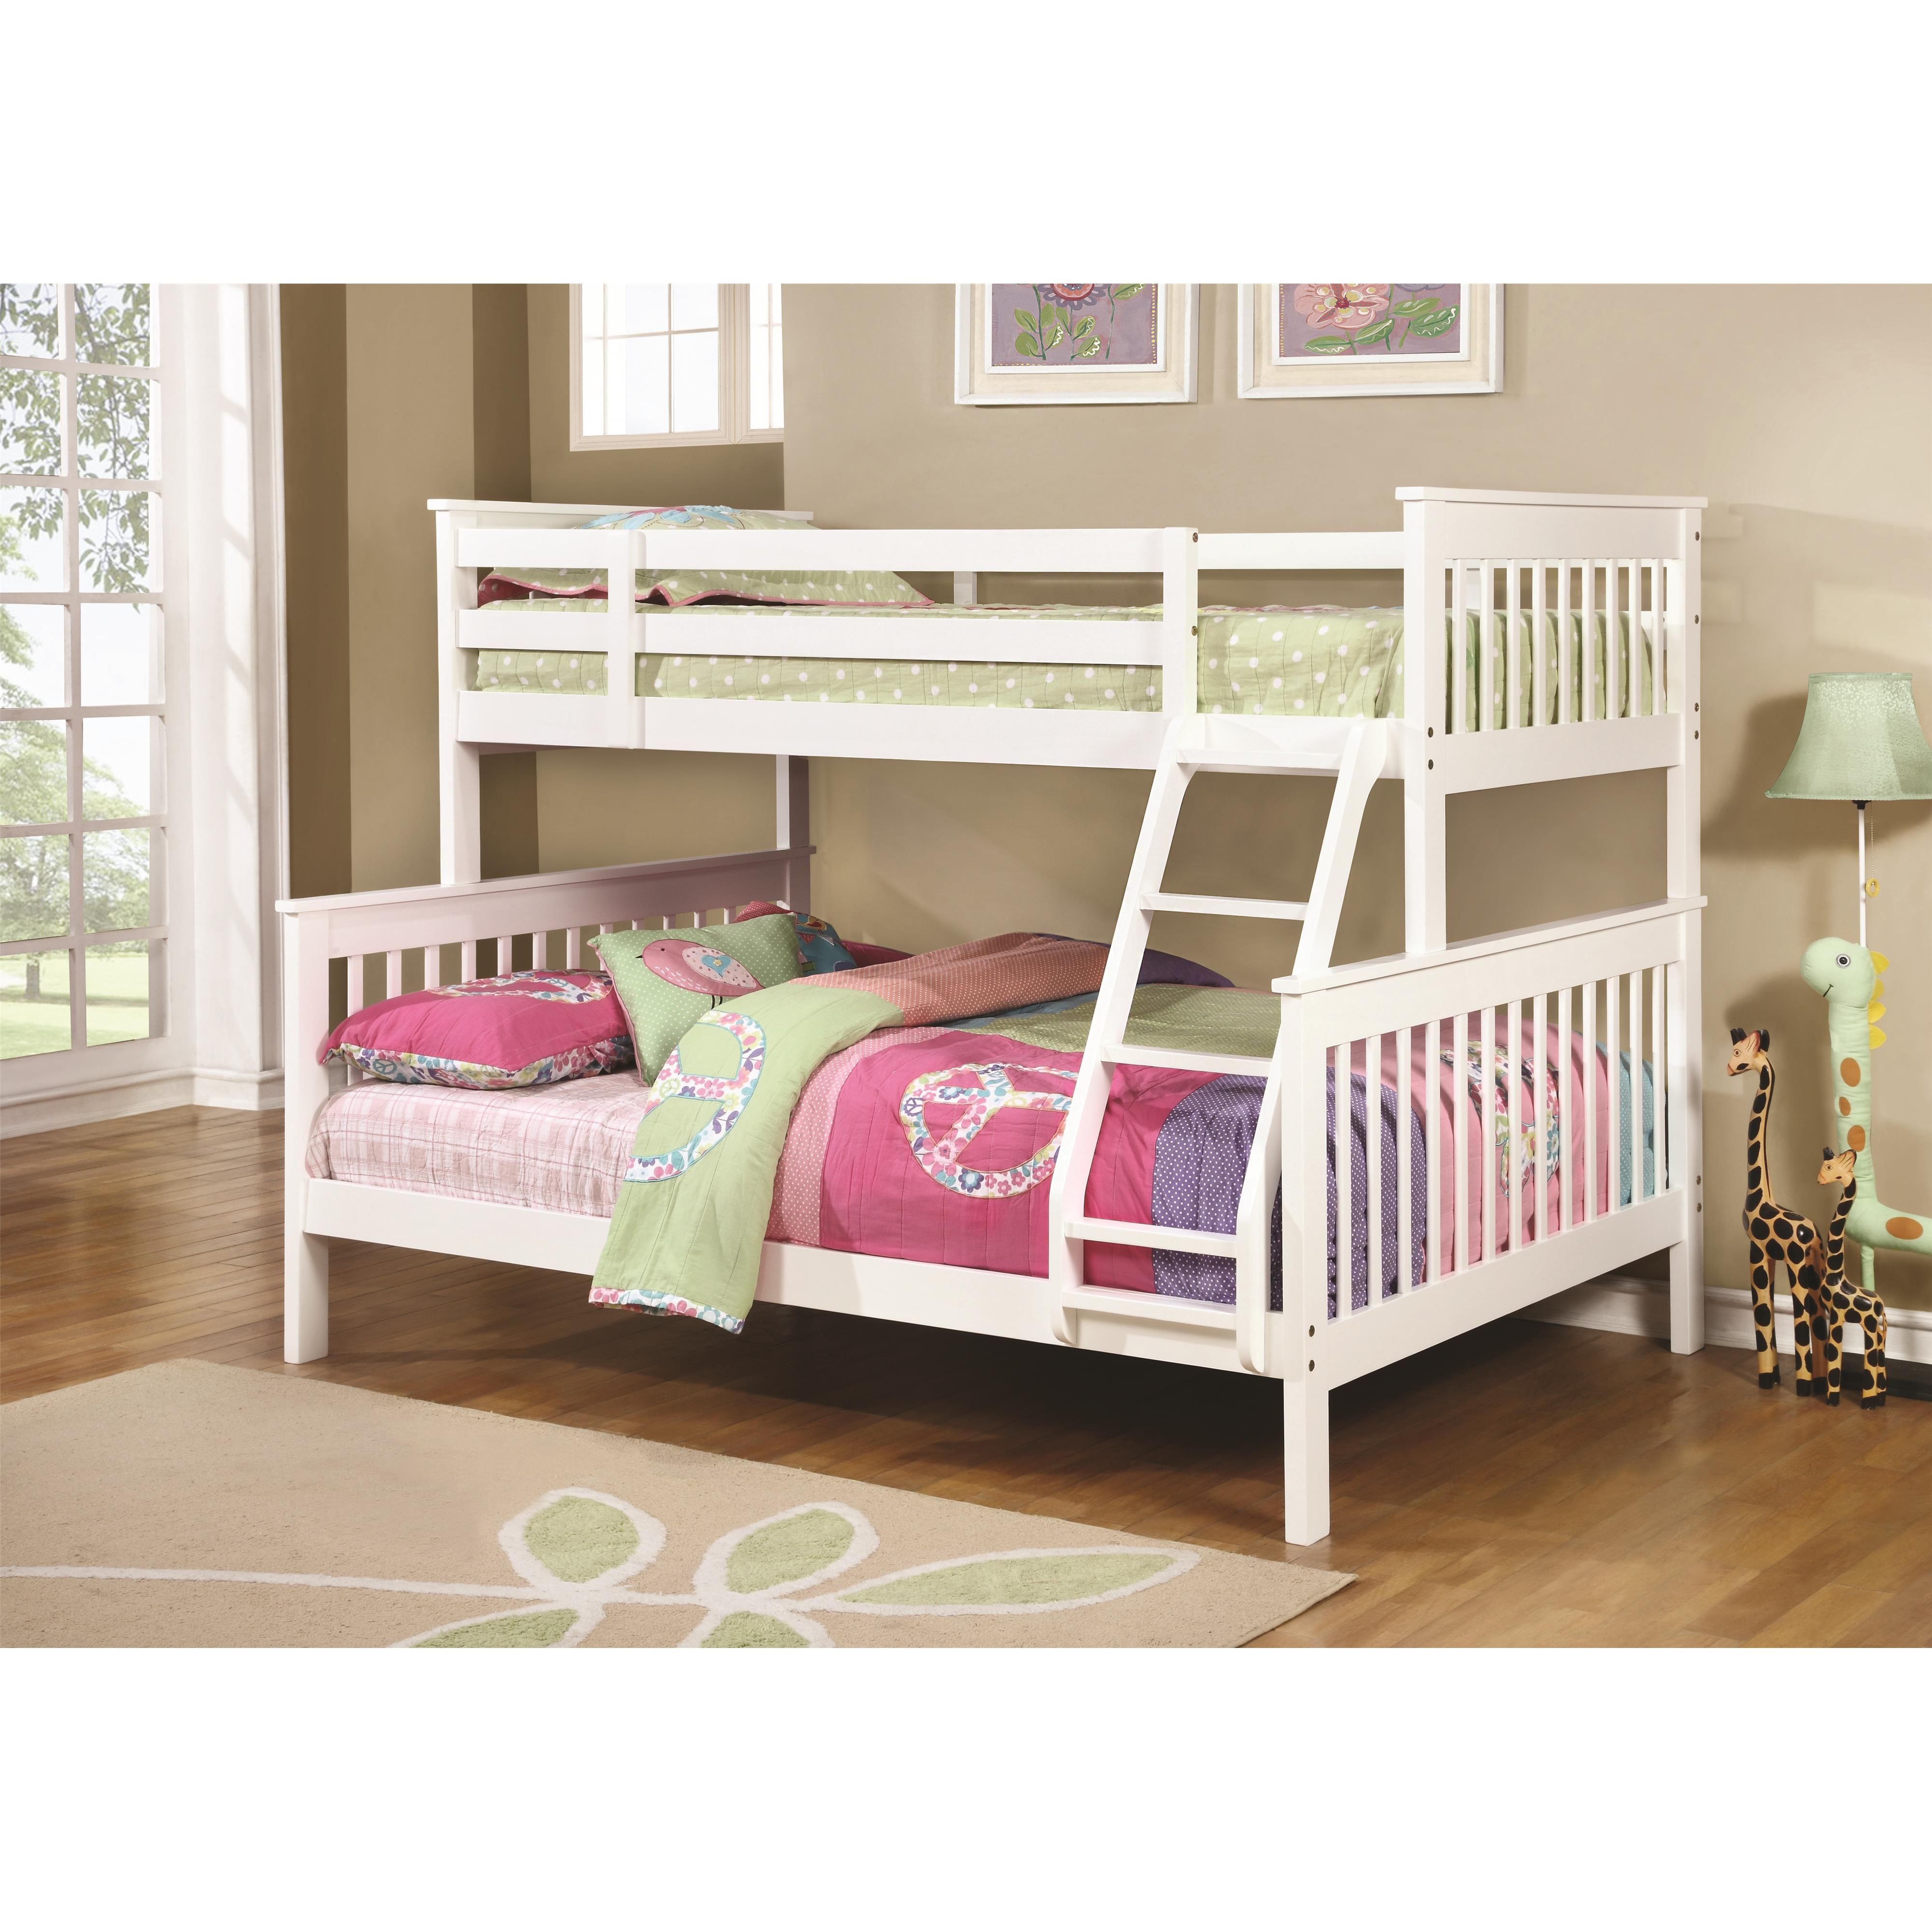 Bunks Traditional Twin Over Full Bunk Bed 460259 2 Colors